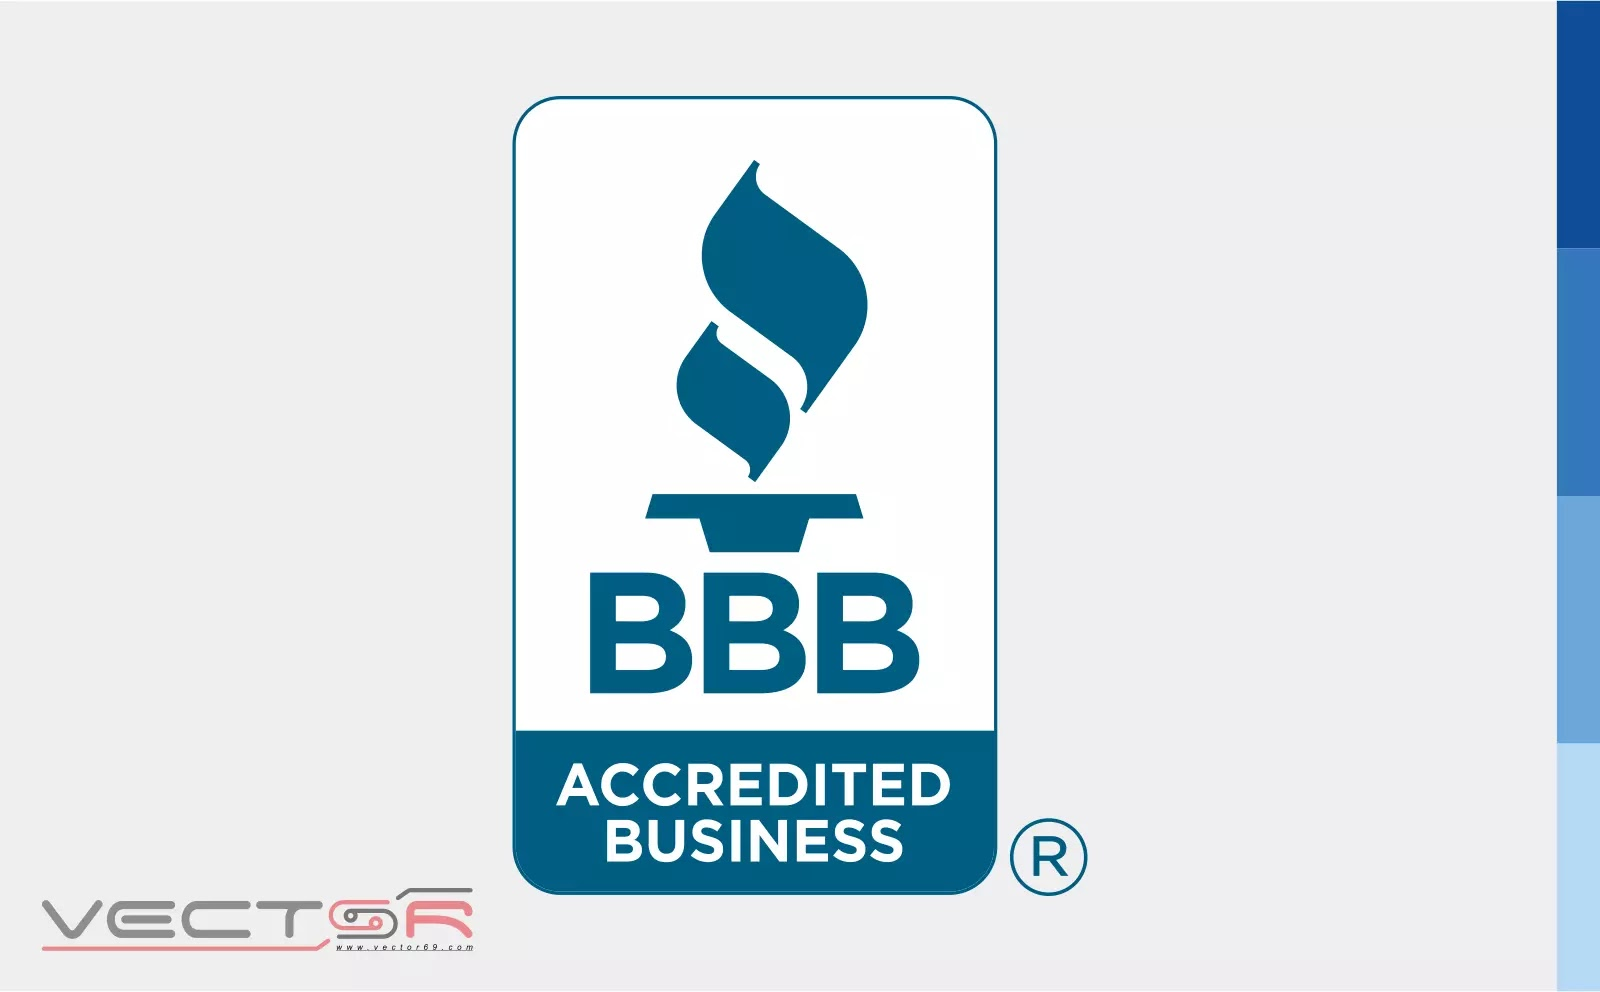 BBB Accredited Business Seal - Download Vector File Encapsulated PostScript (.EPS)